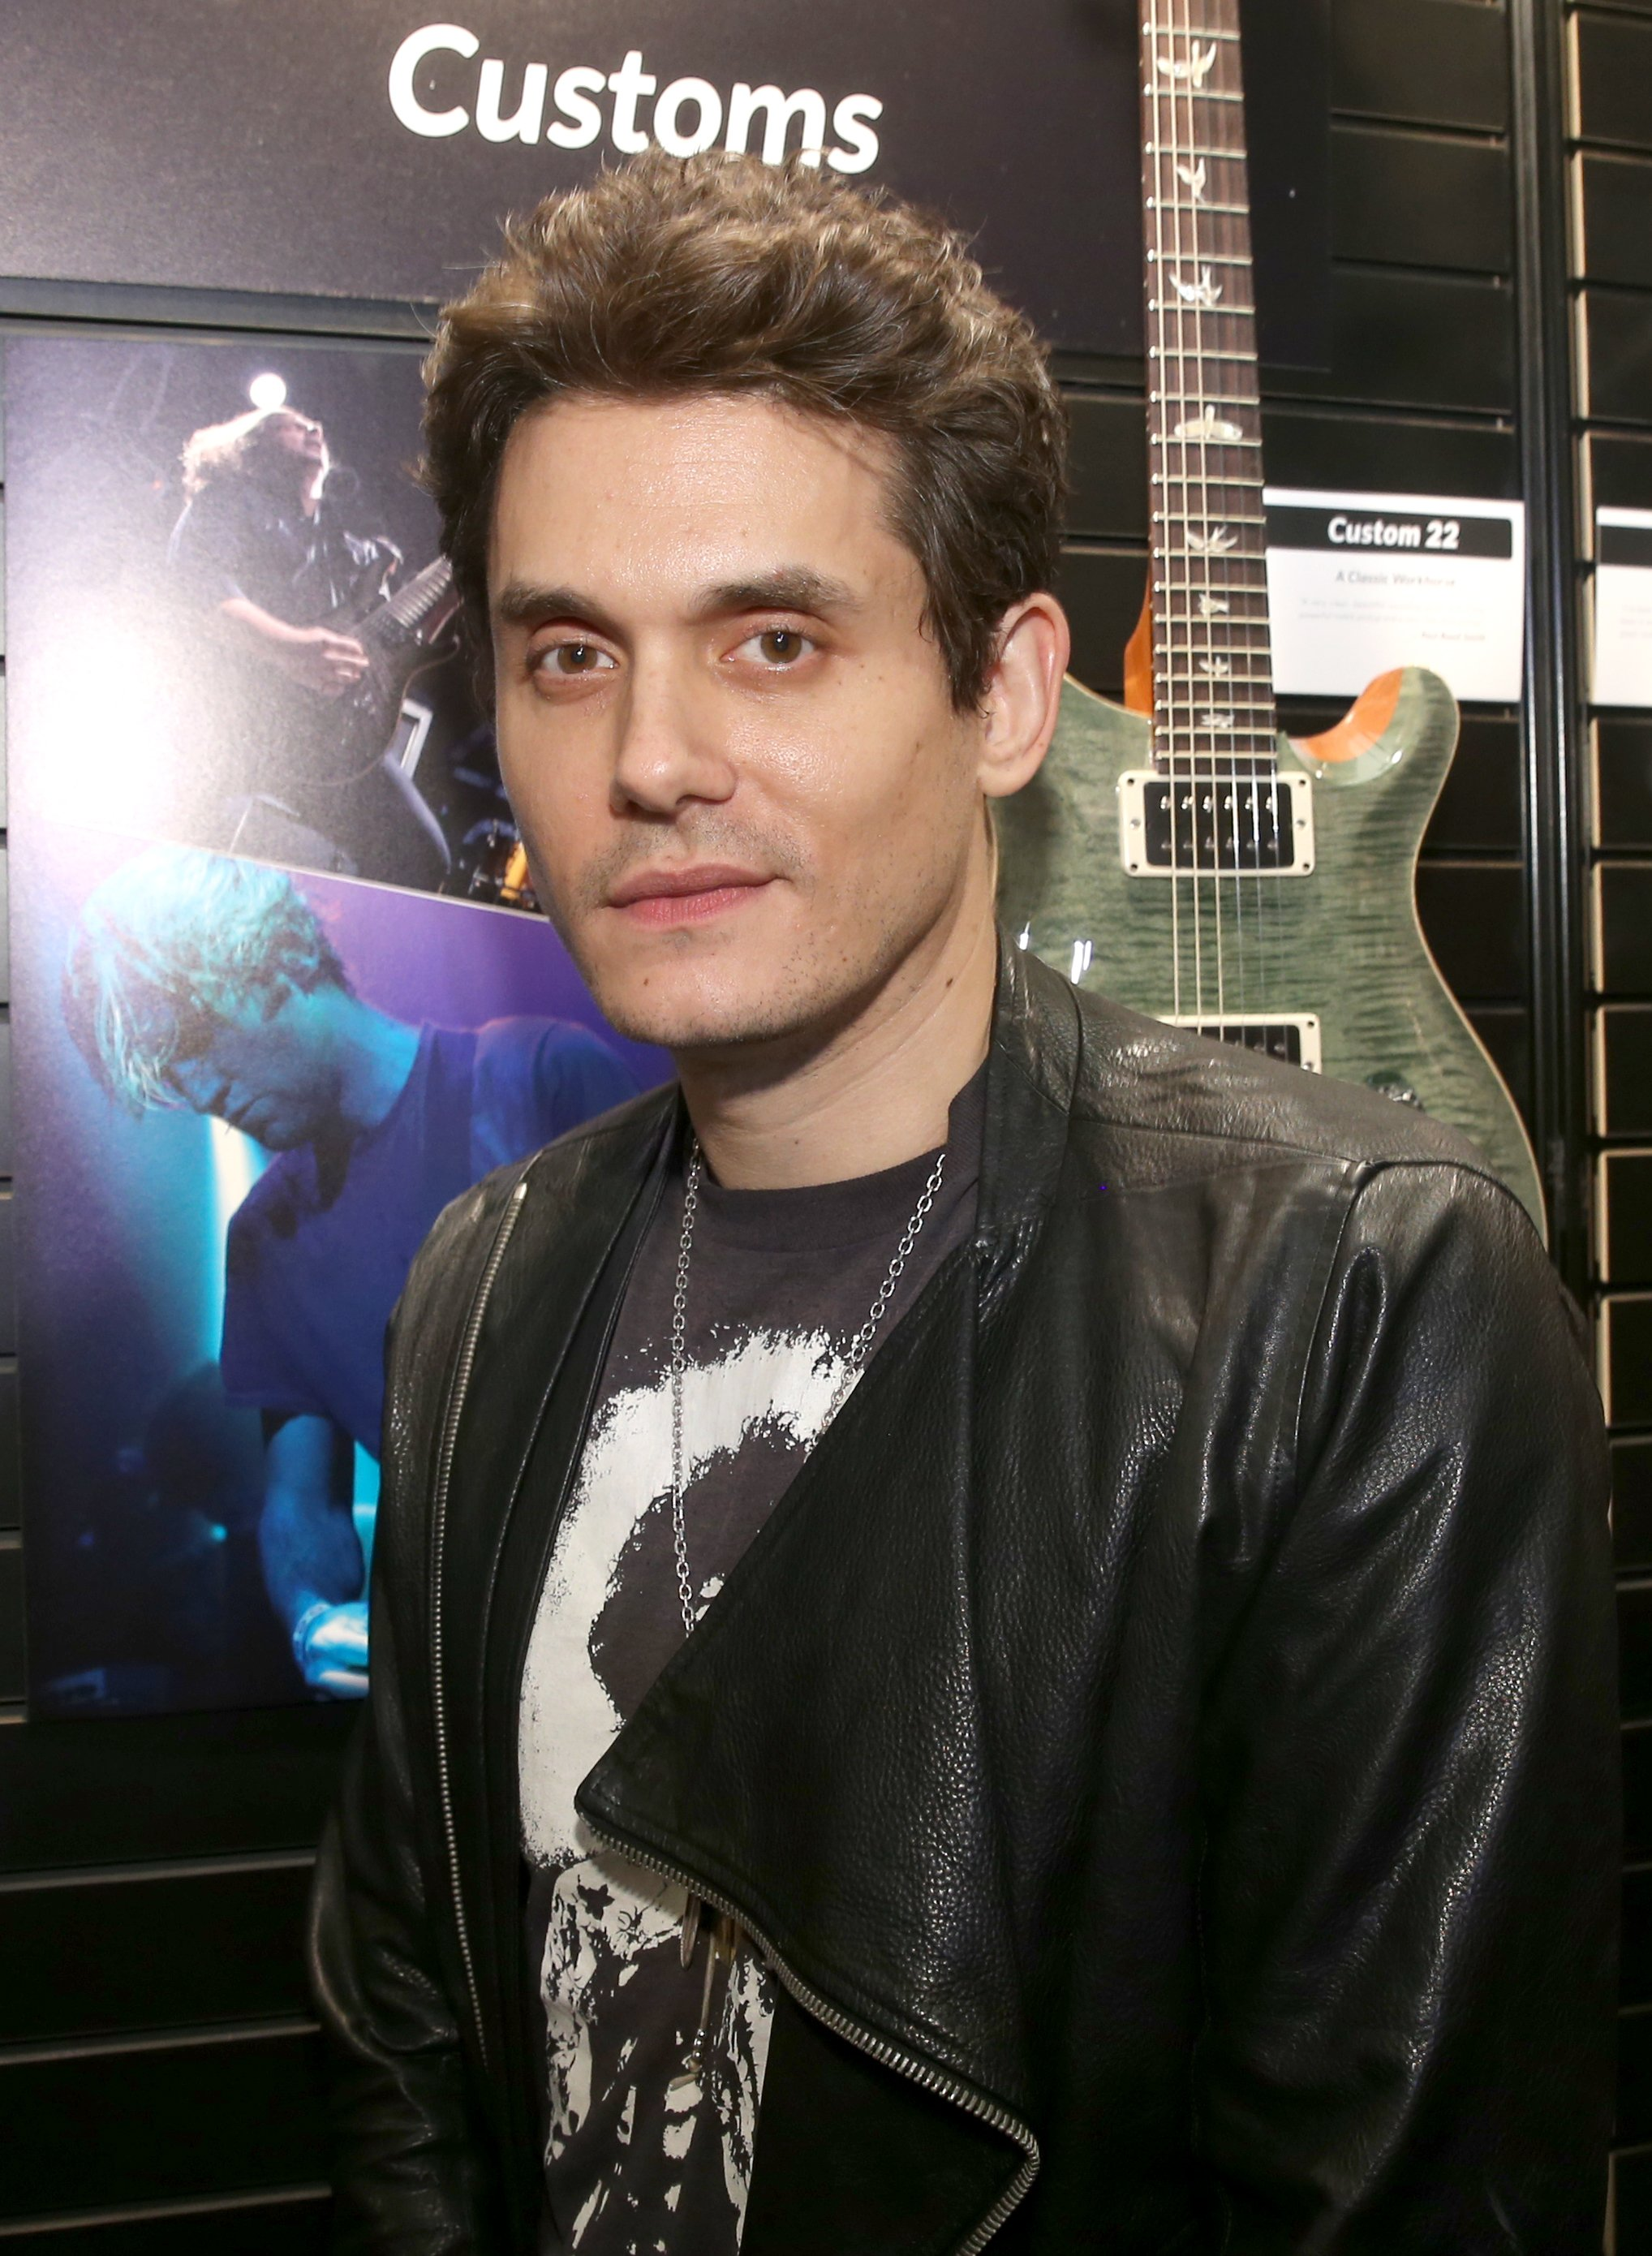 John Mayer attends the 2017 NAMM Show at the Anaheim Convention Center on January 20, 2017 in Anaheim